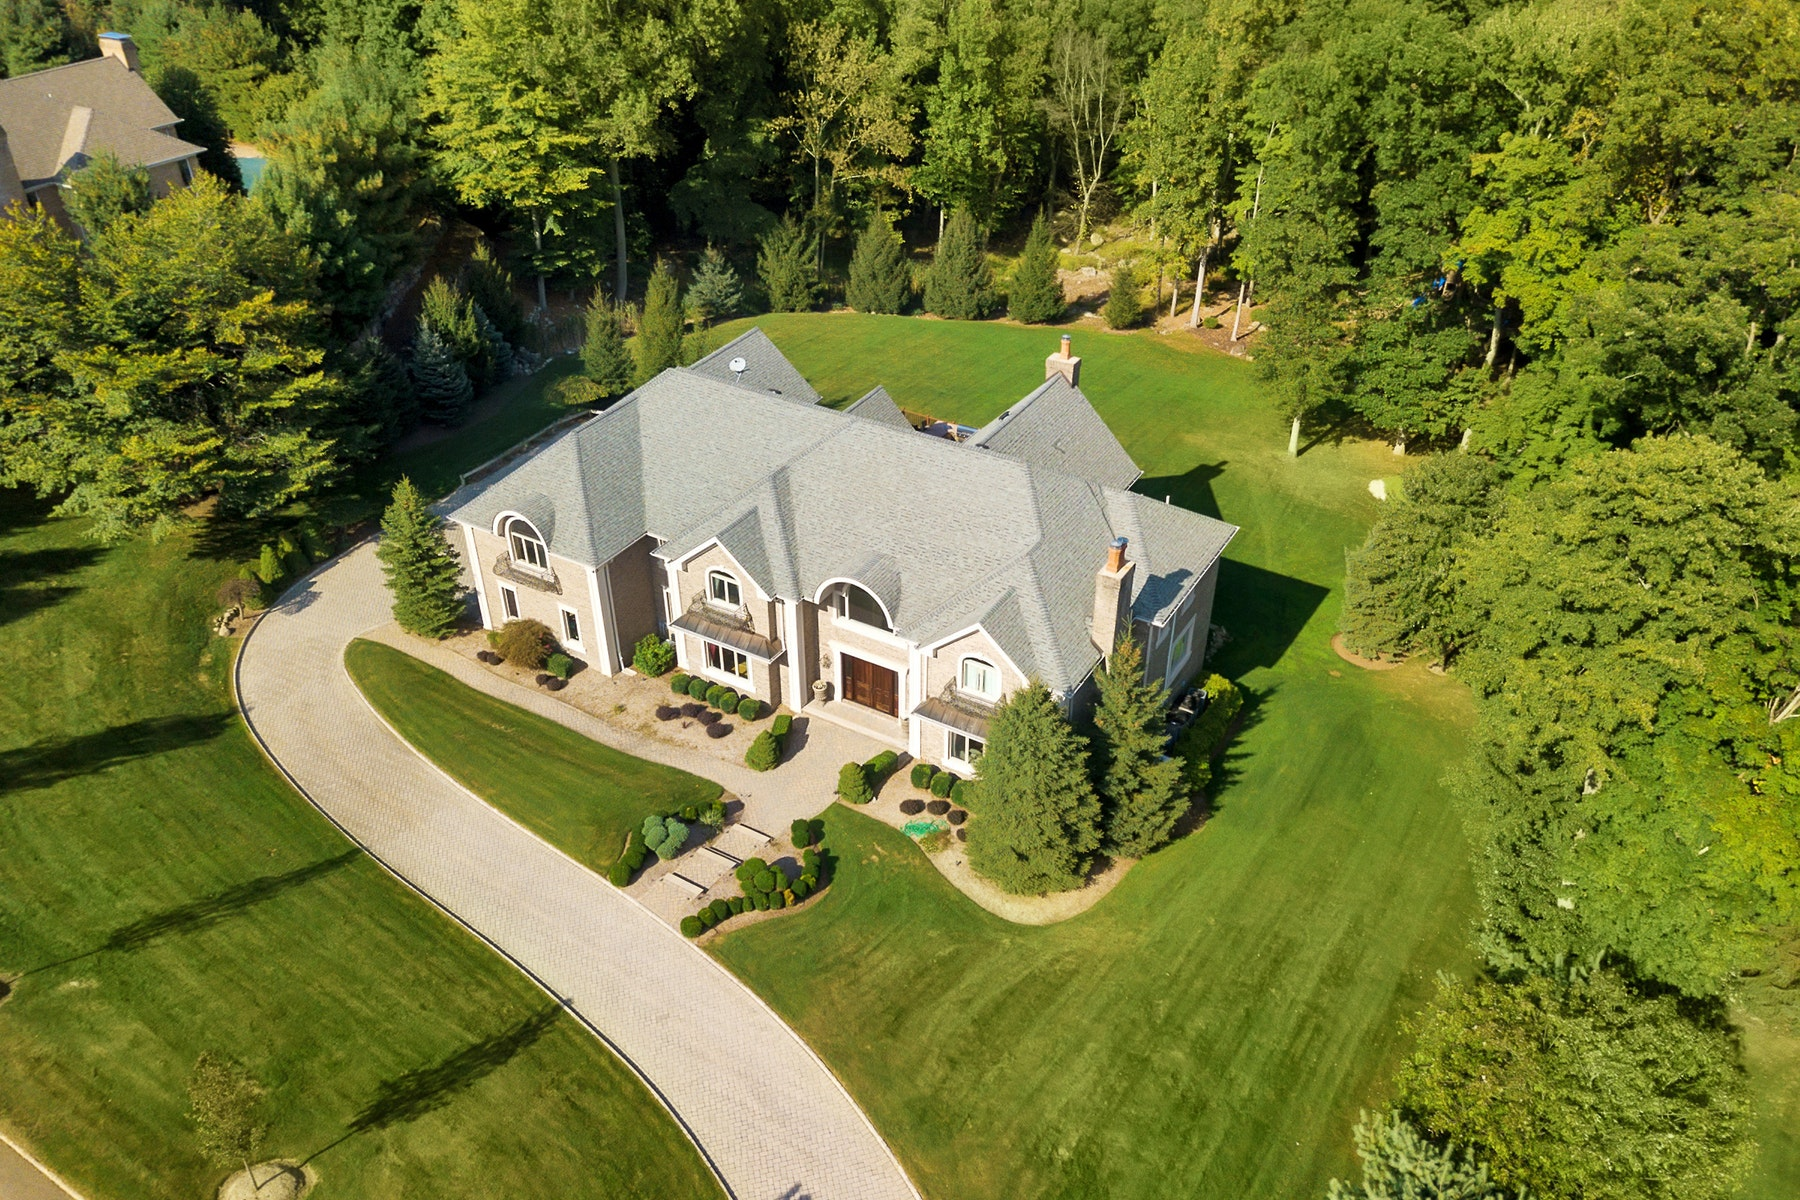 Single Family Home for Sale at Welcome to Pure Luxury 59 Brams Hill Drive, Mahwah, New Jersey 07430 United States